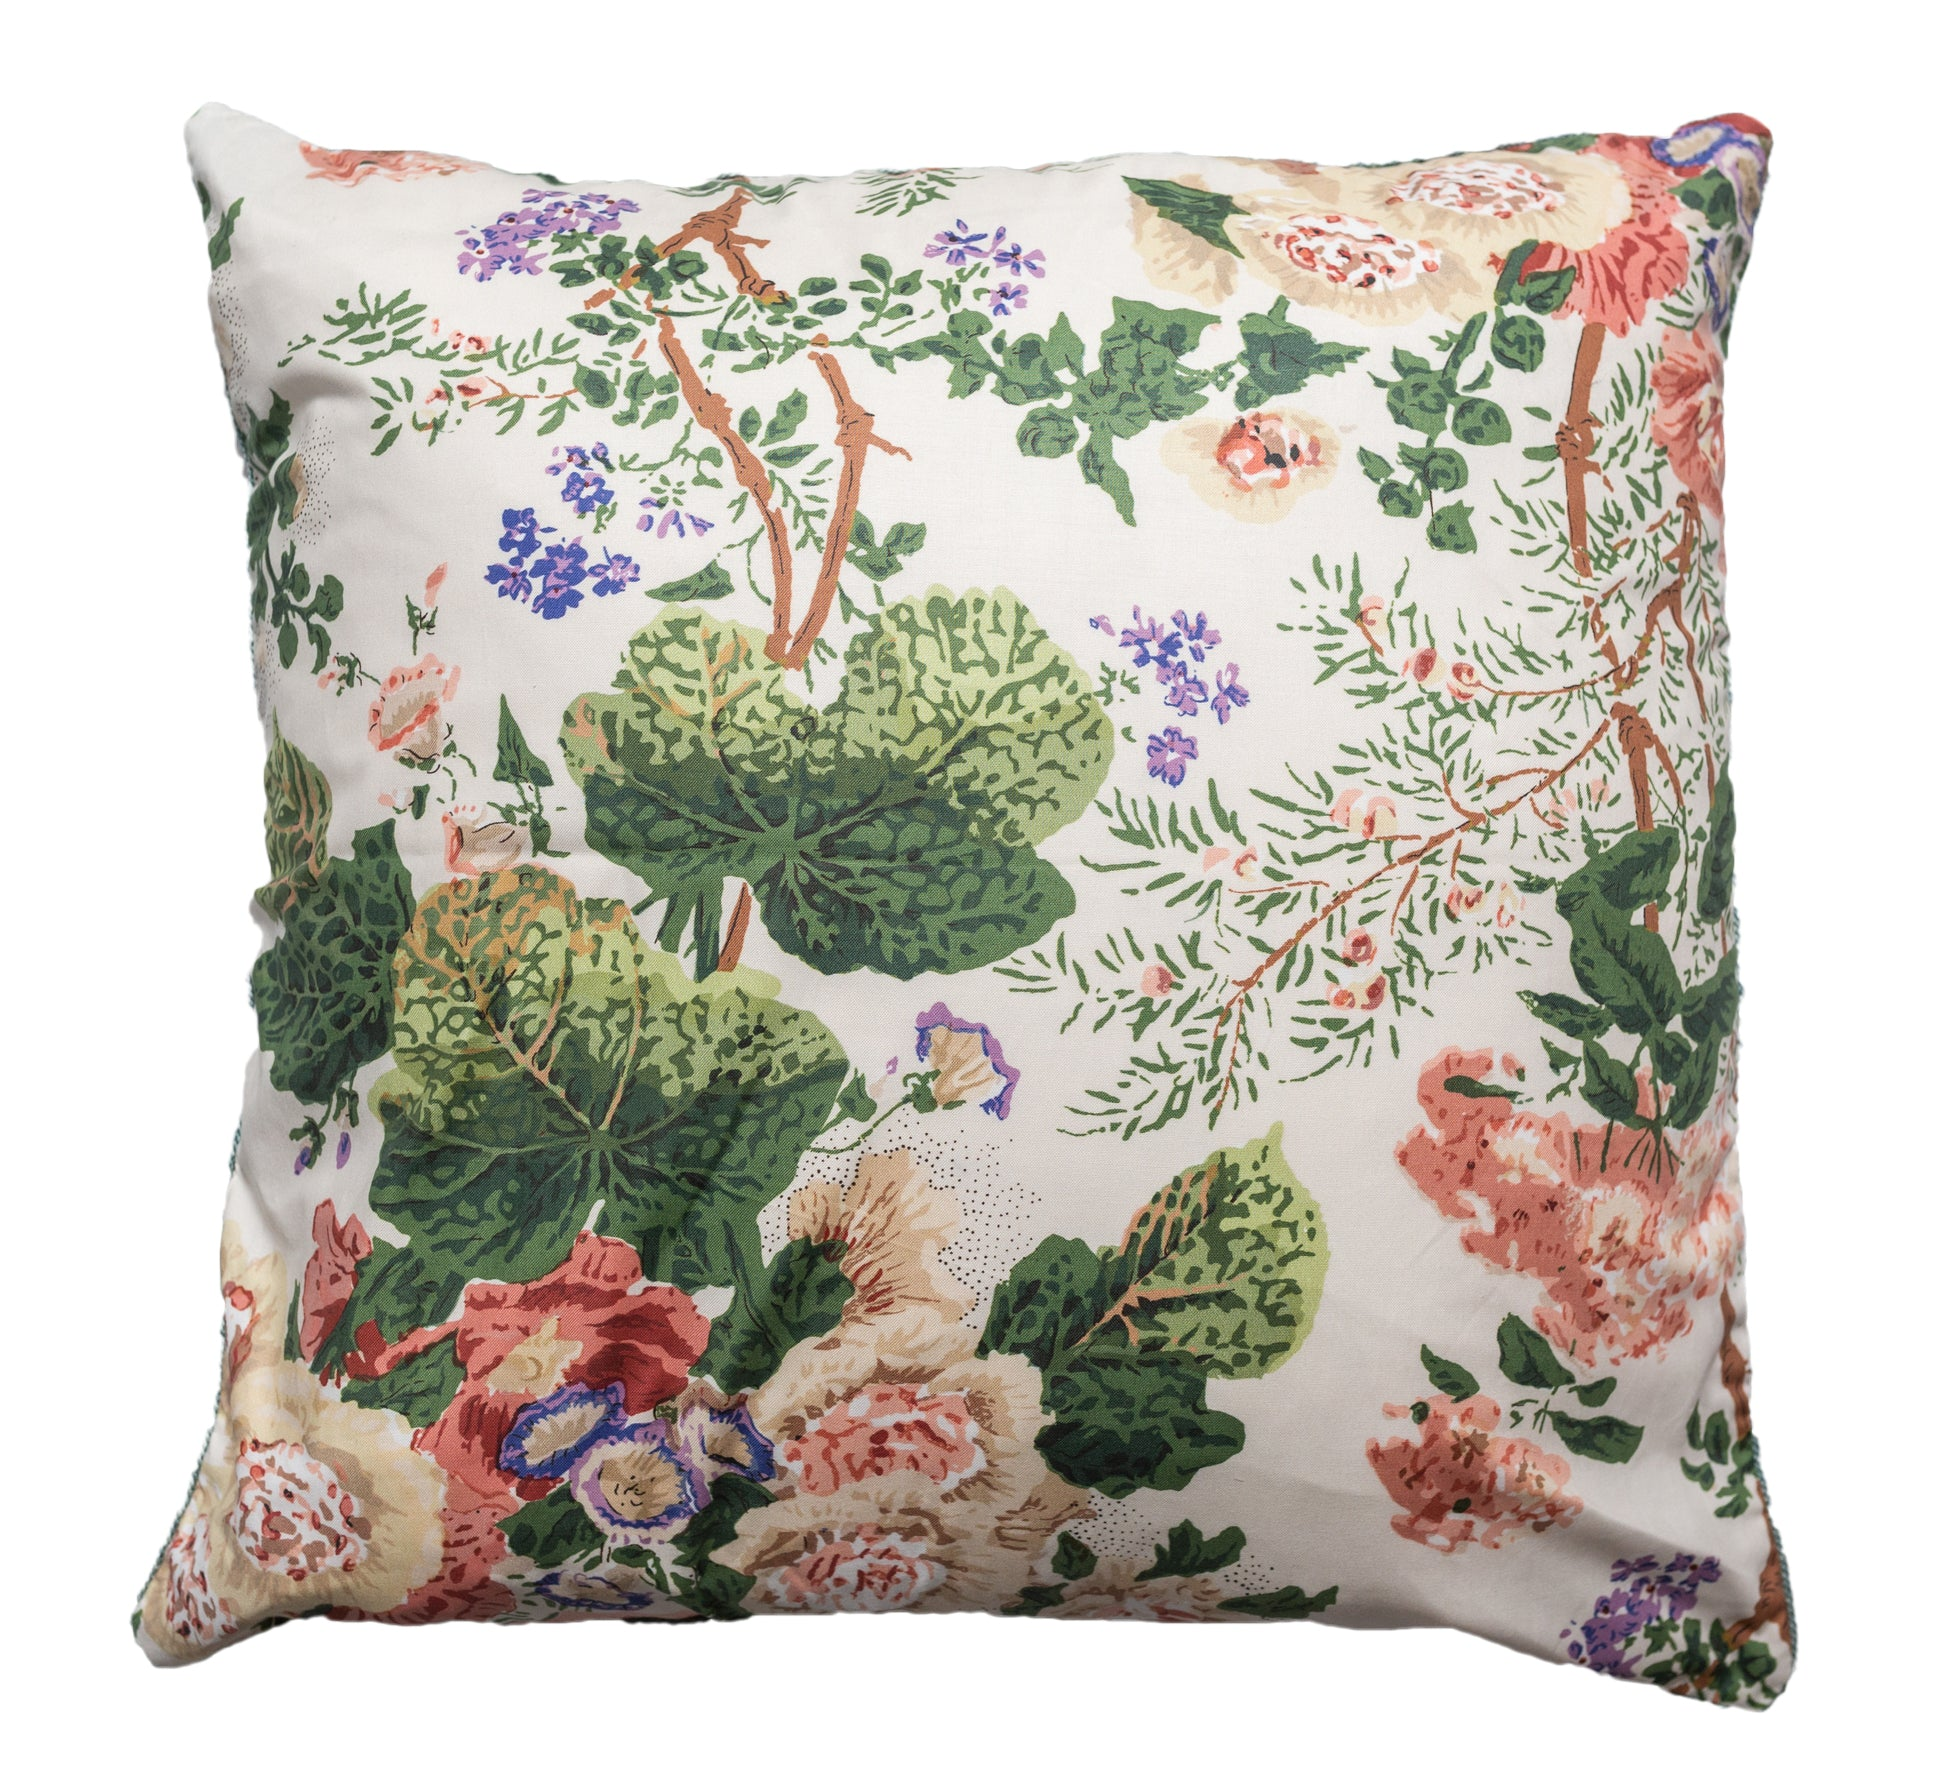 Althea Pillows - Amy Berry Home